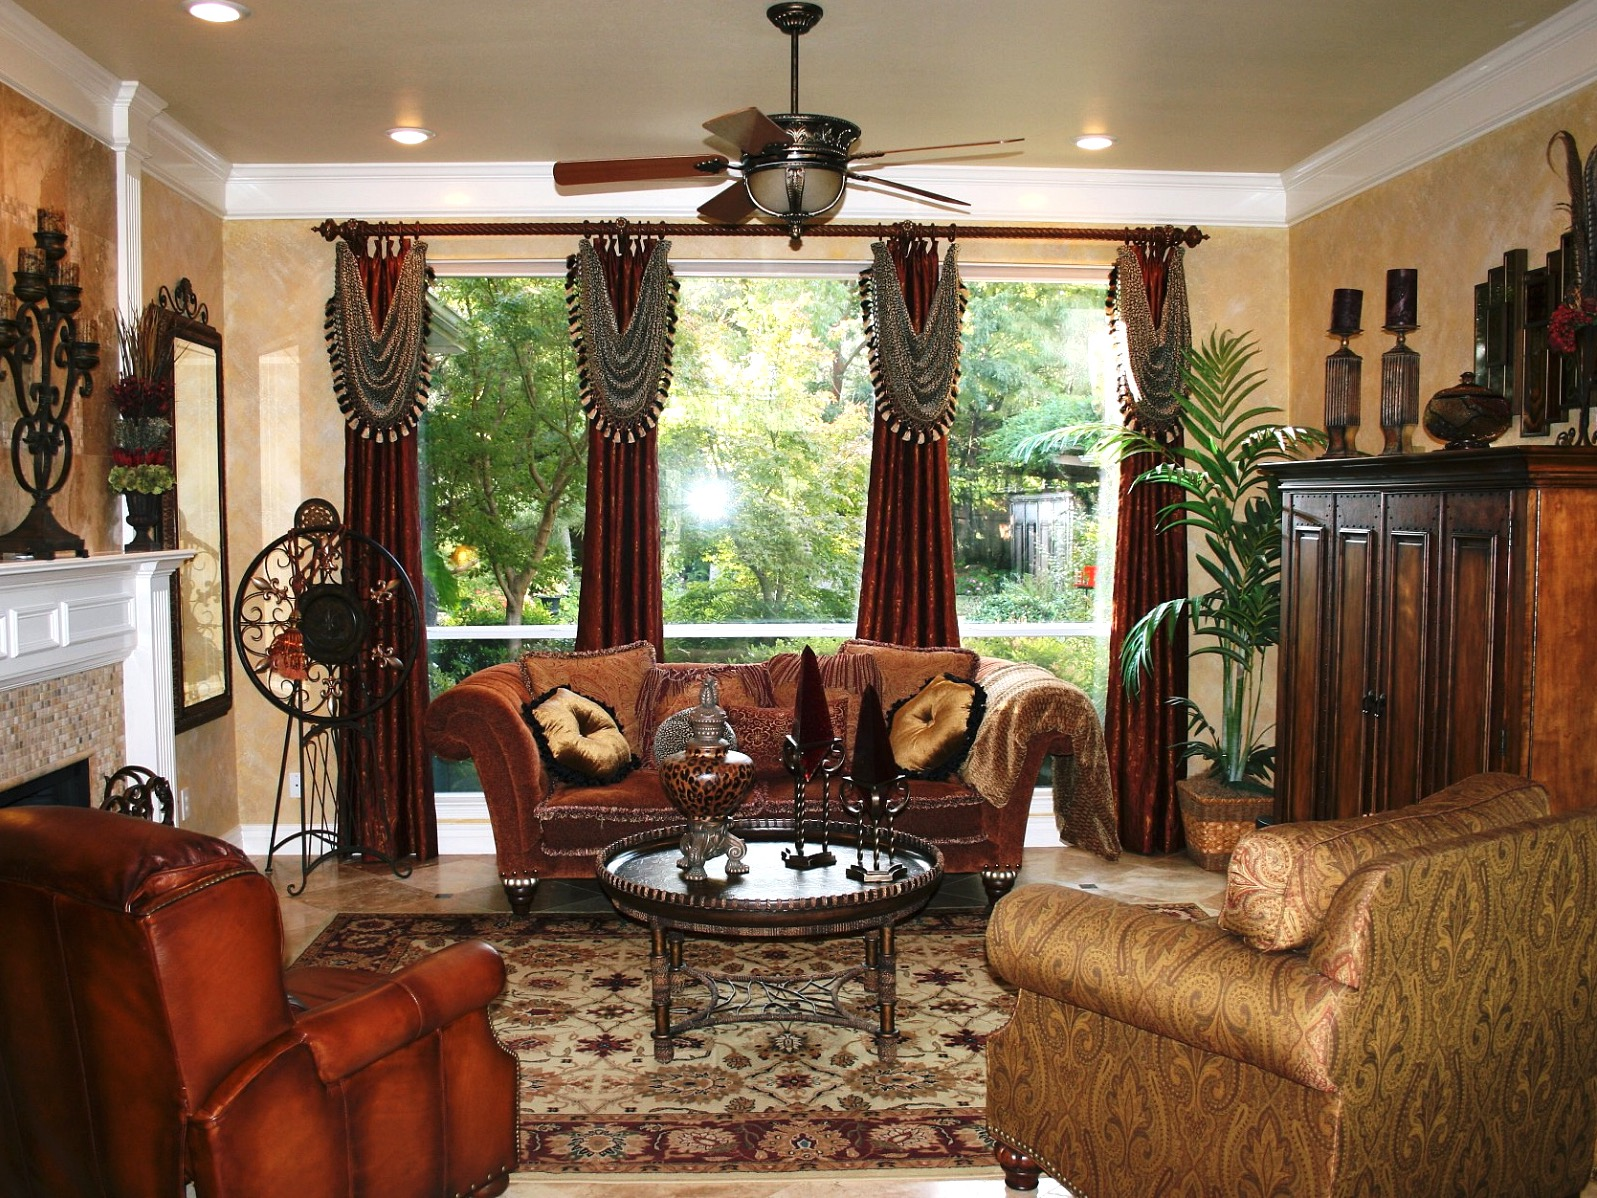 Western Living Room With Velvet Sofa And Old World Rug (View 4 of 18)